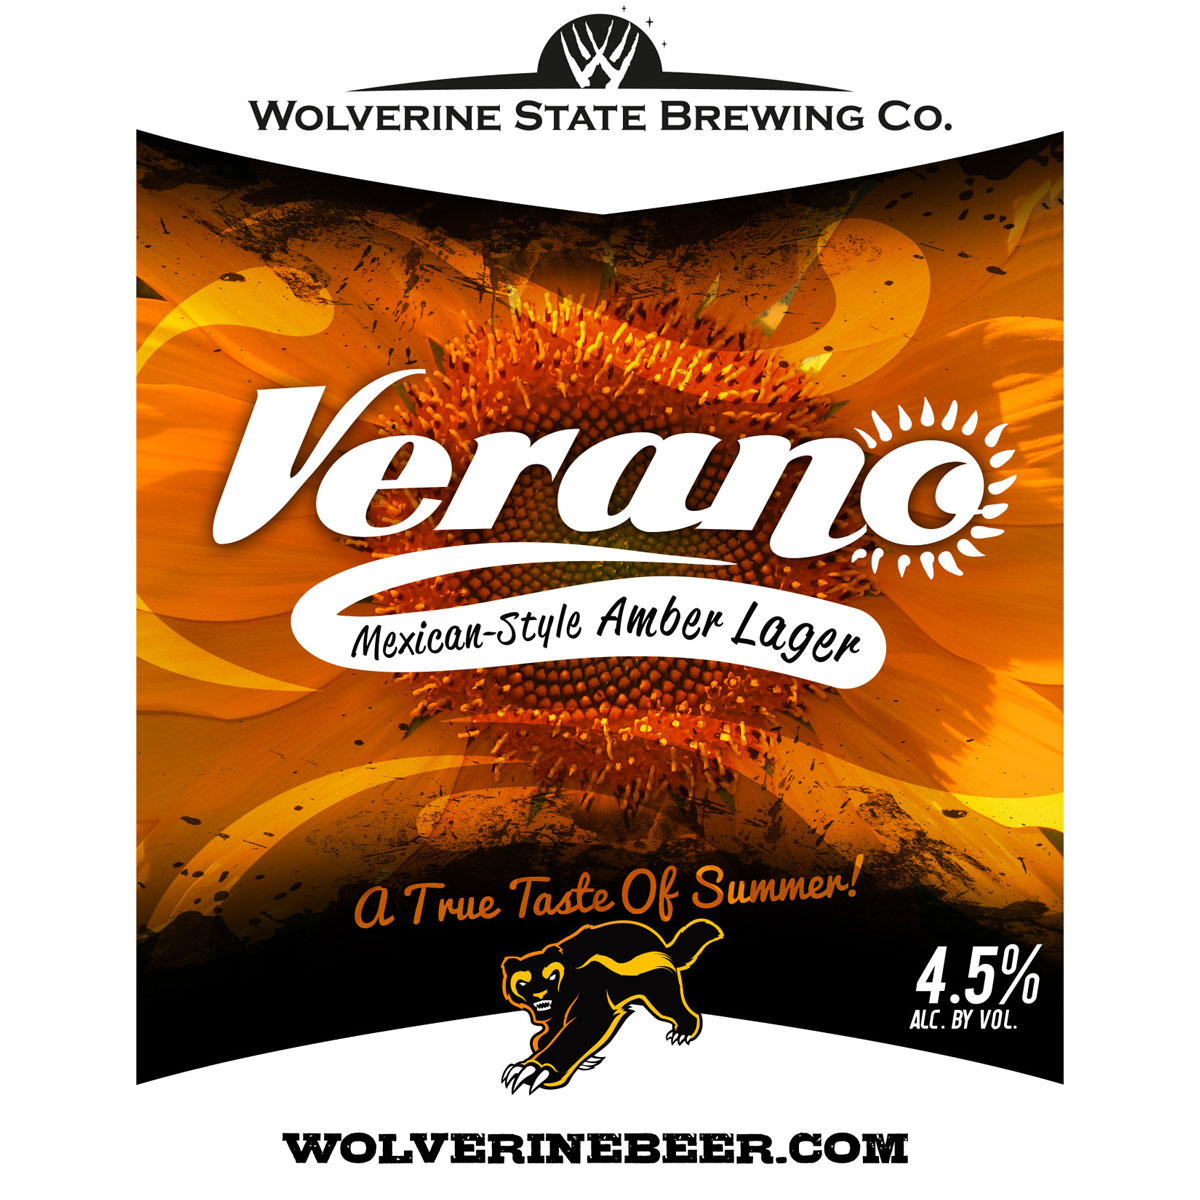 Michigan: Wolverine State Verano Mexican-Style Amber Lager